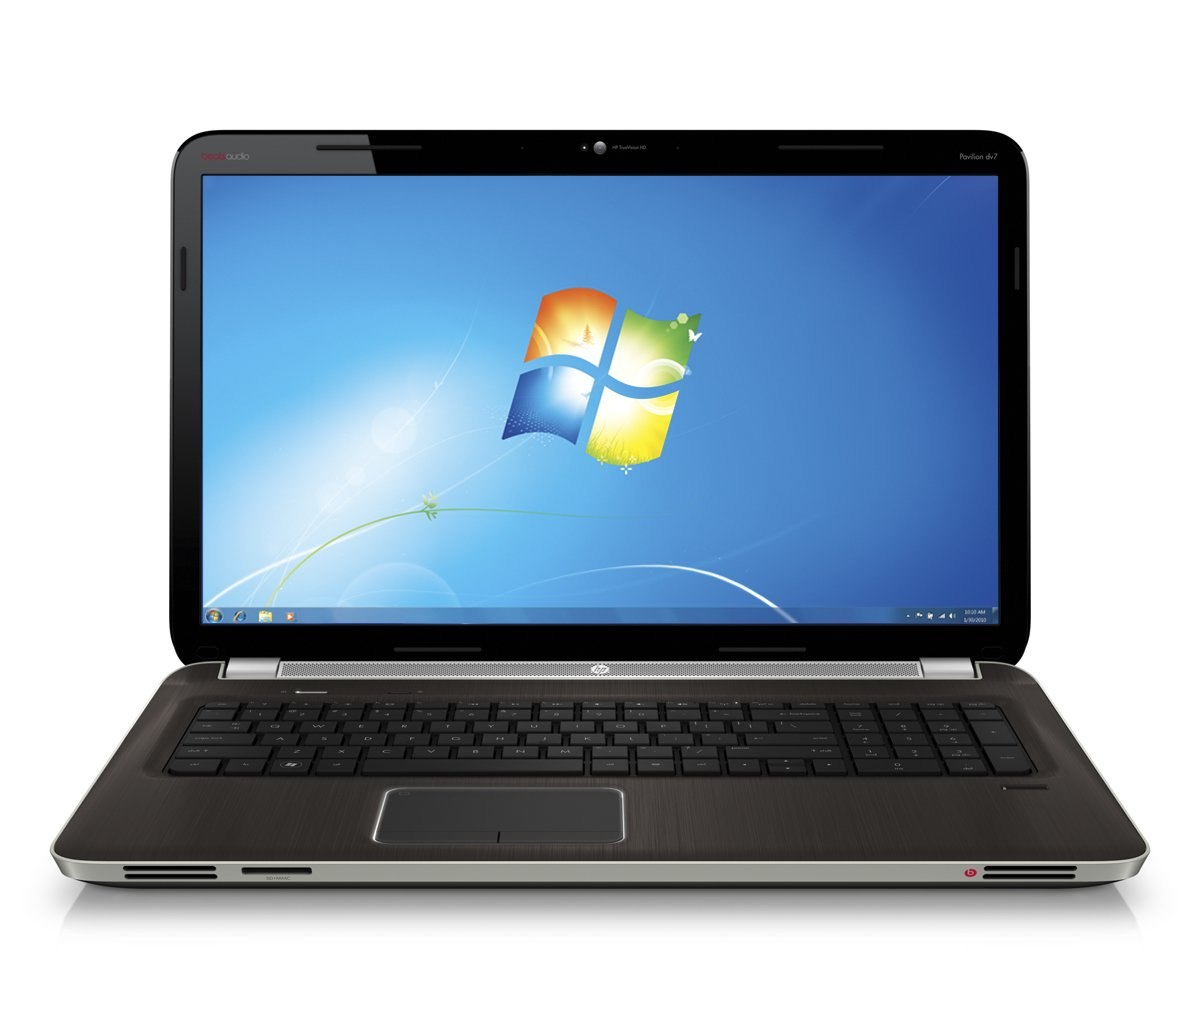 HP PAVILION DV7T-4100 NOTEBOOK INTEL PROWIRELESS WINDOWS DRIVER